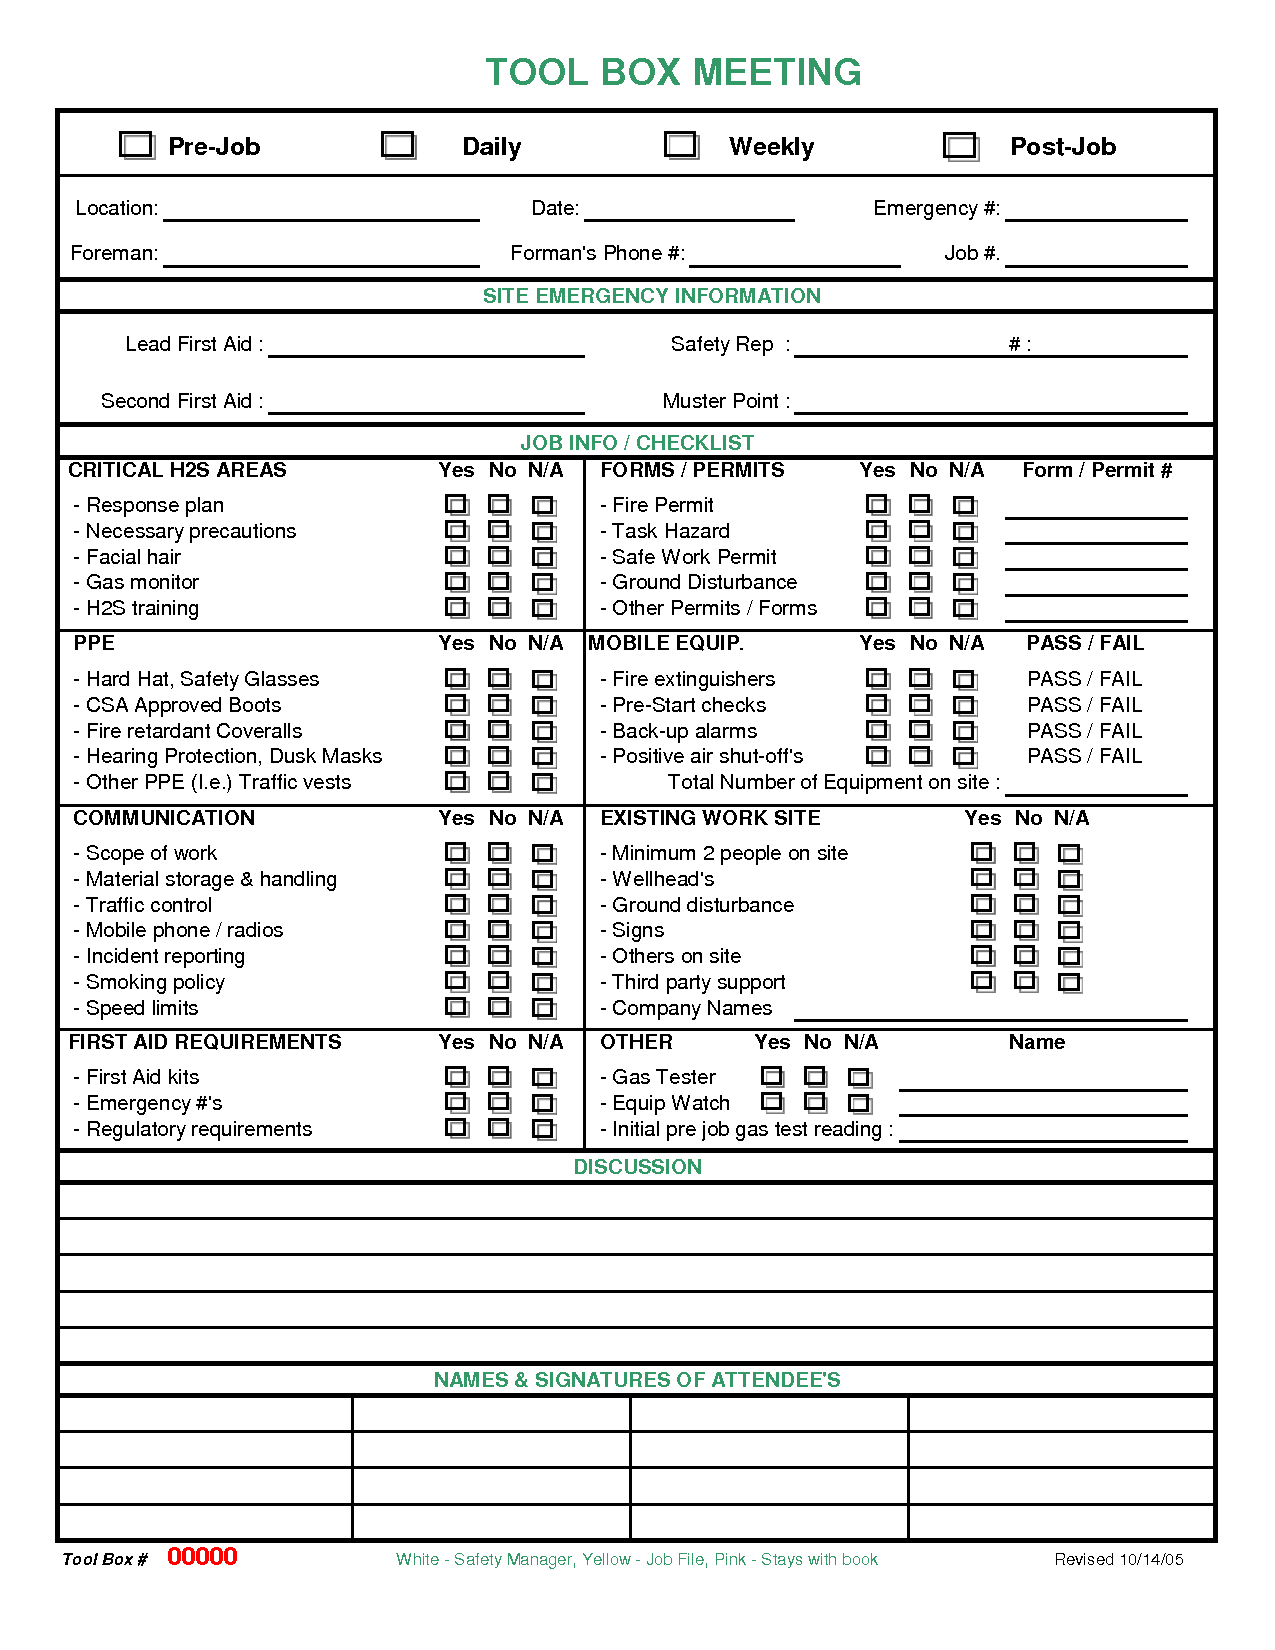 meeting checklist template images | Toolbox Meeting | Procedure ...